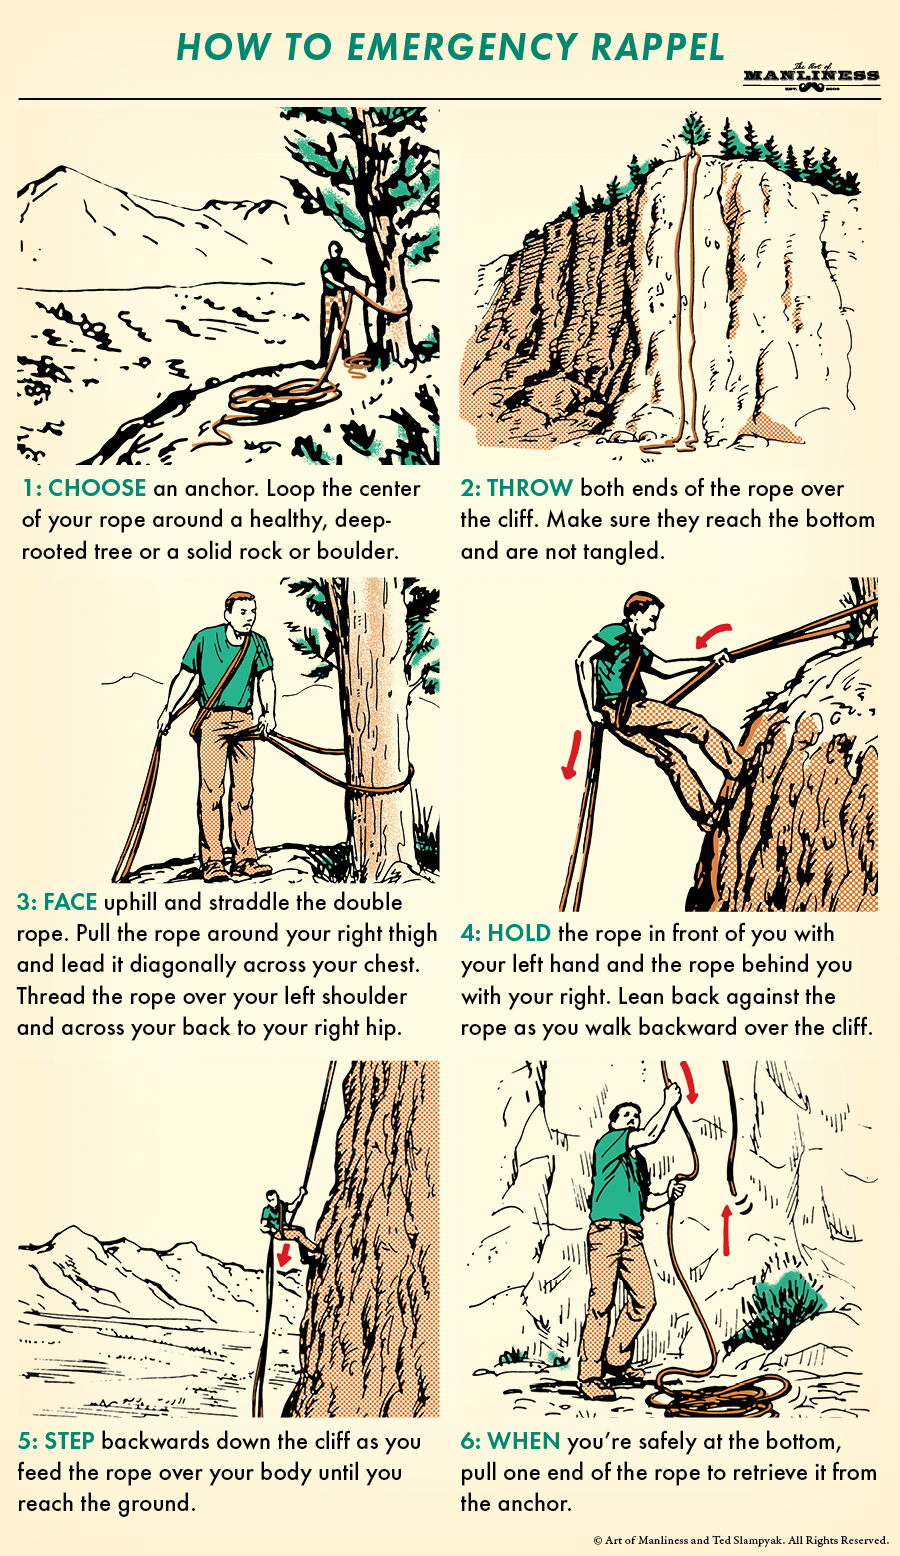 Poster by Art of Manliness regarding how to rappel in emergency situation.